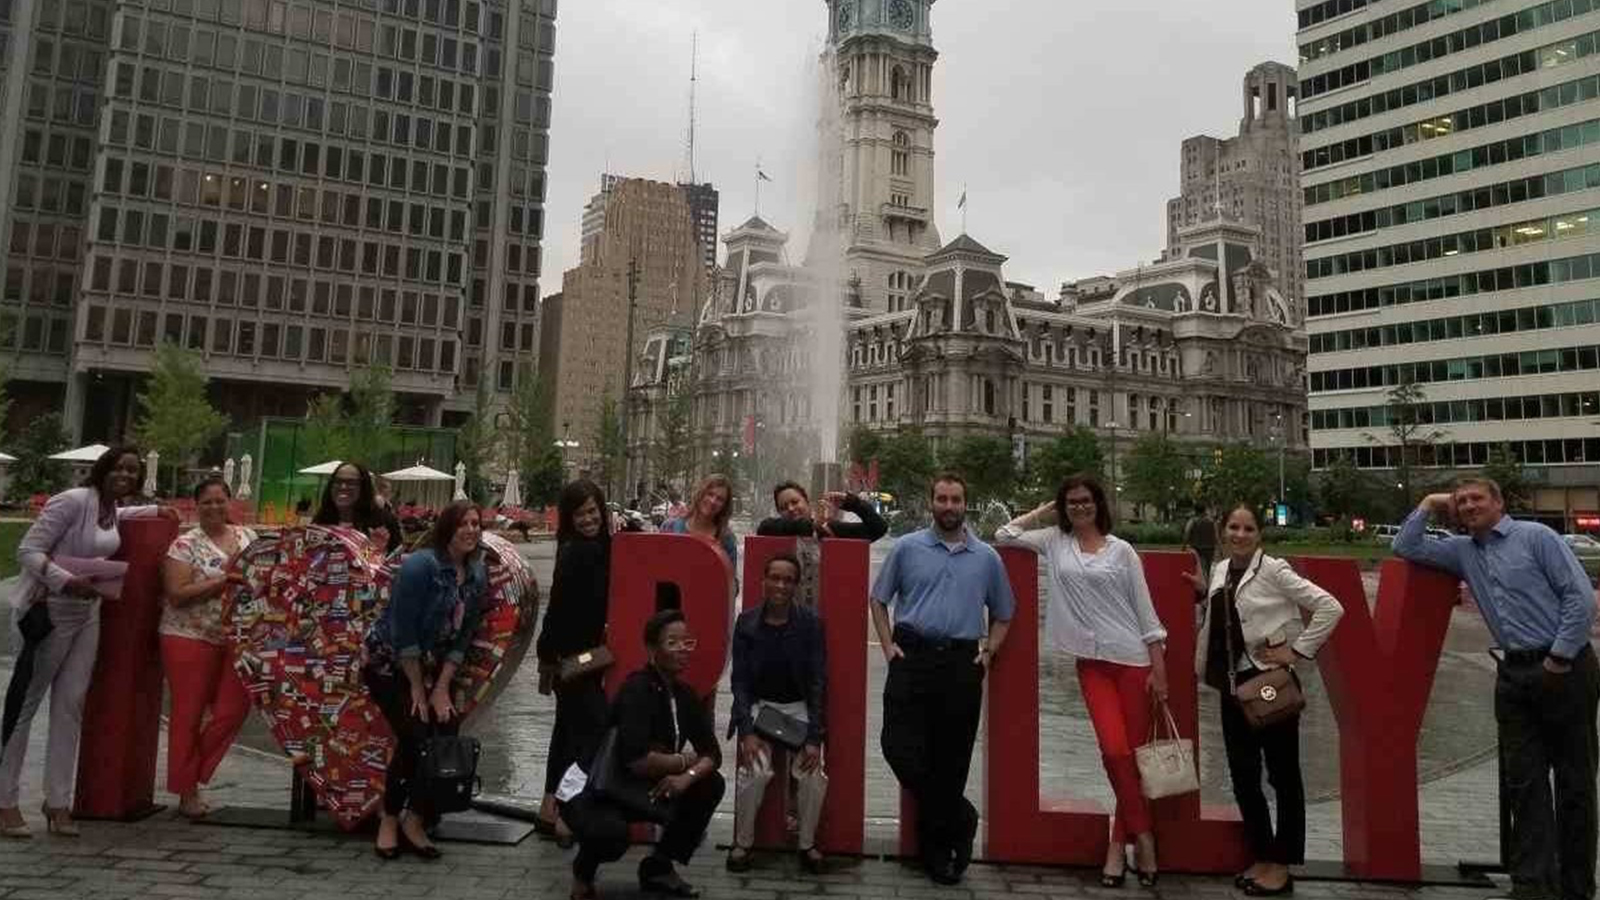 Comcast employees standing together in a Philadelphia park.